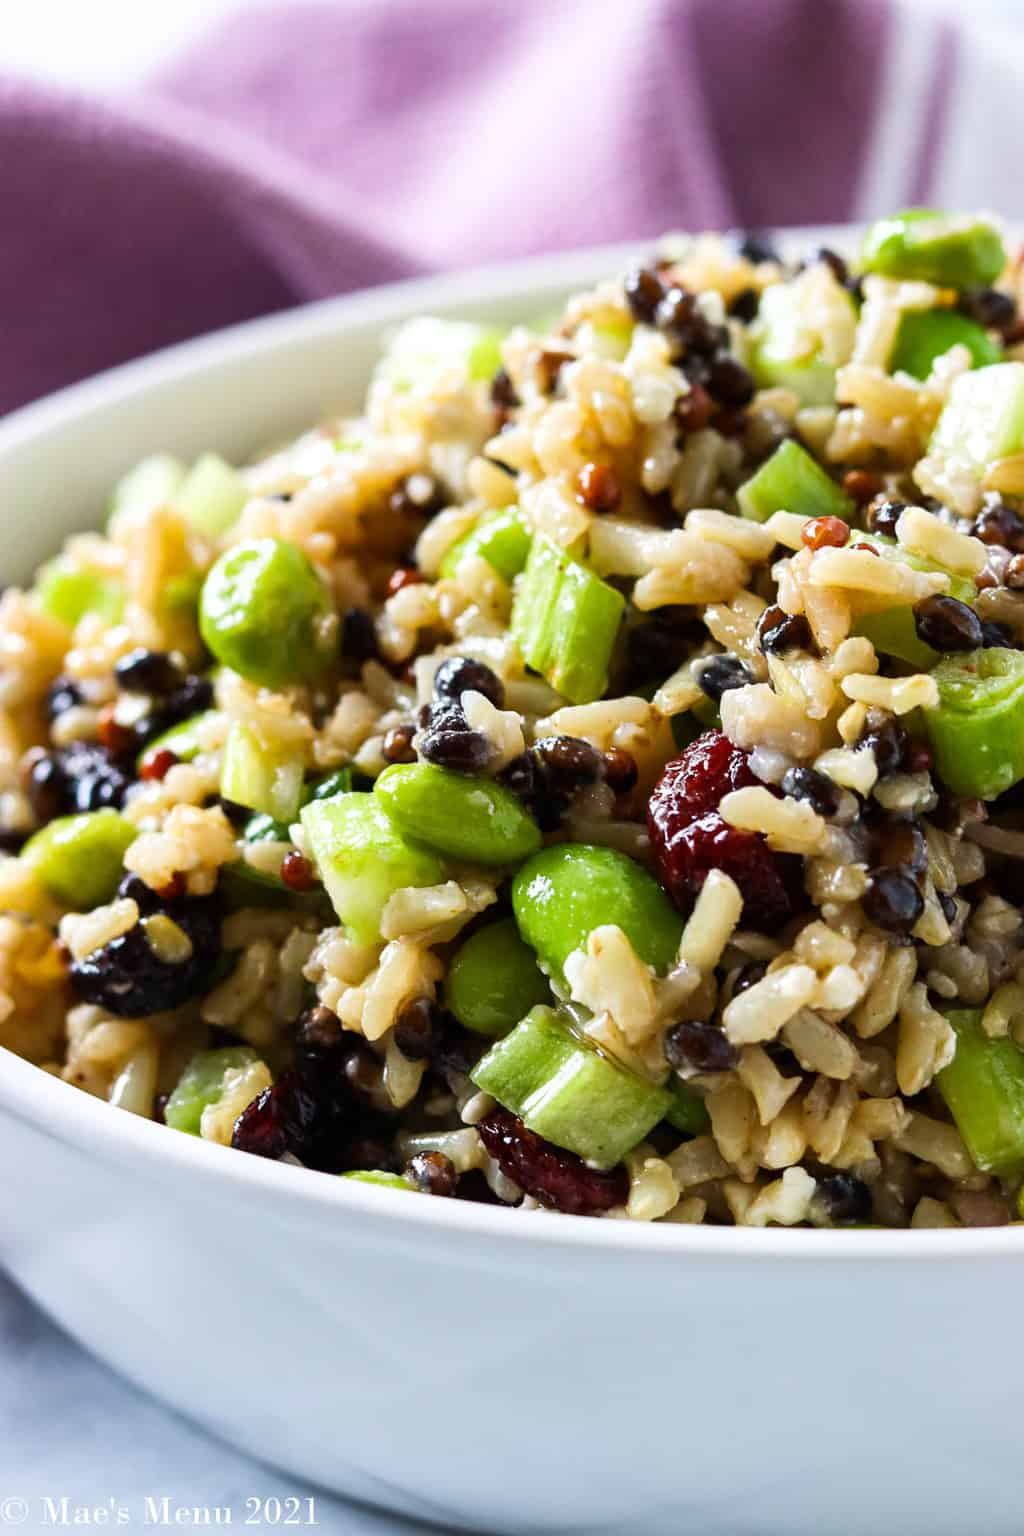 An up-close side sot of cranberry edamame rice salad in a white bowl